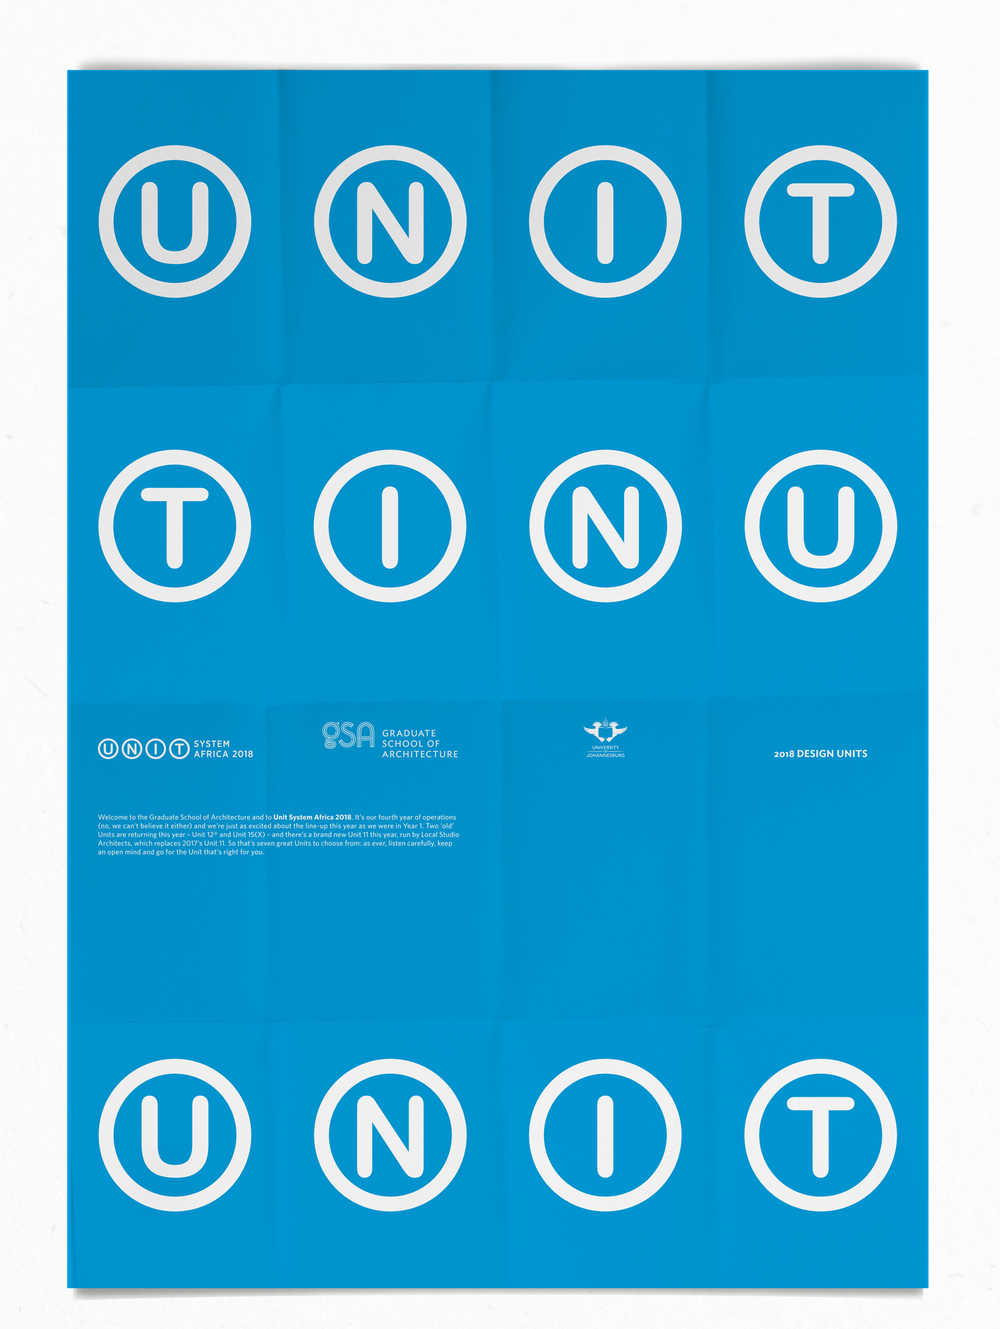 Unit System poster 2018 Blue_One.png